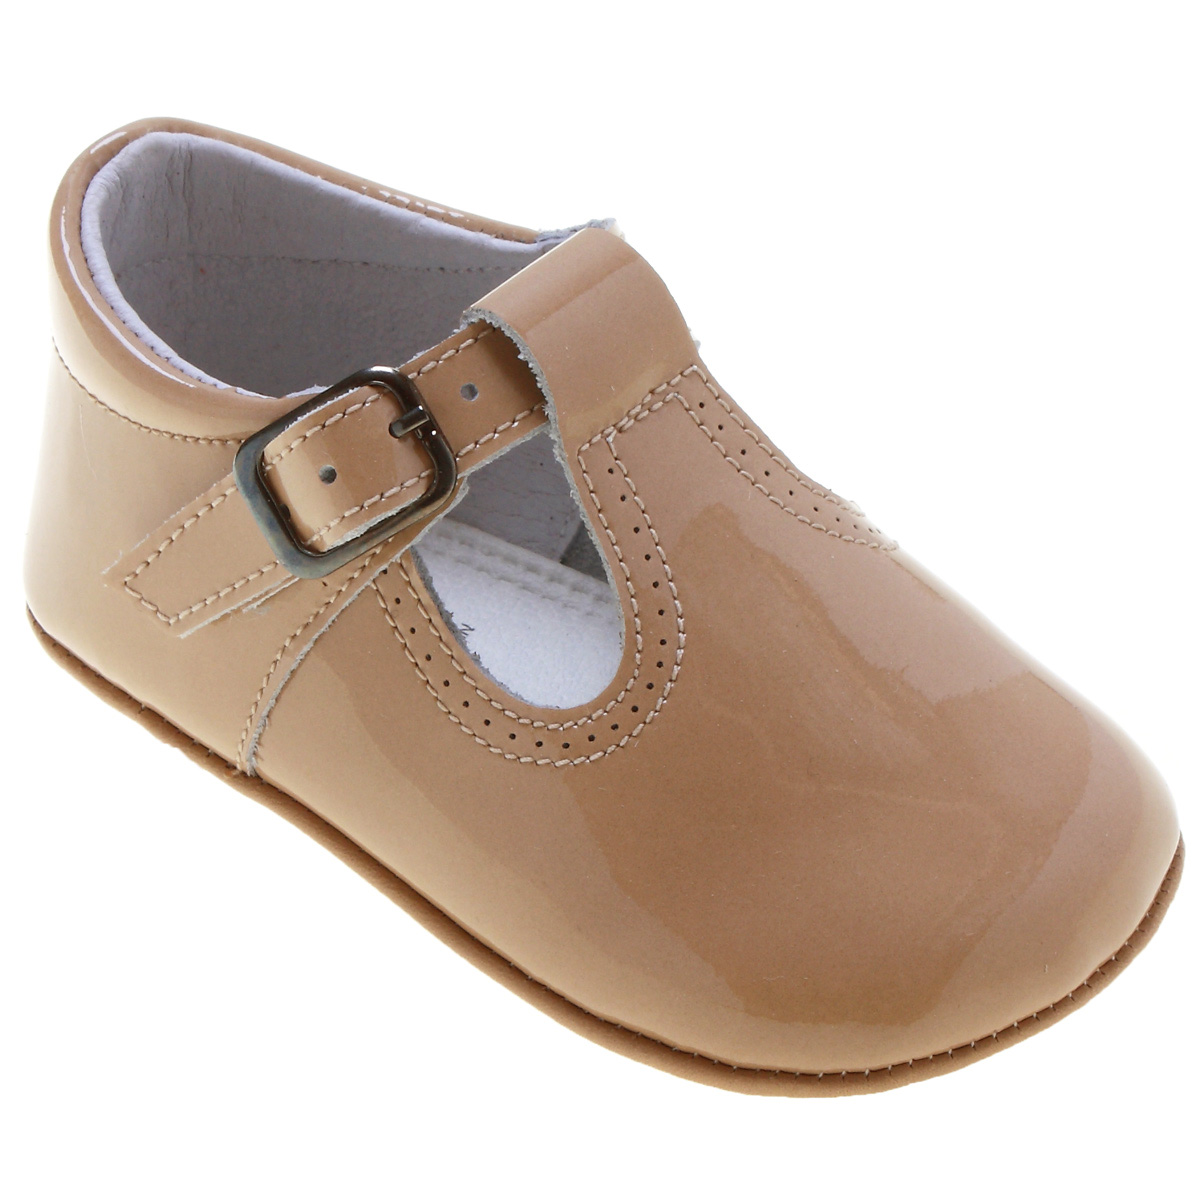 Baby T Bar Shoes in Caramel Colour